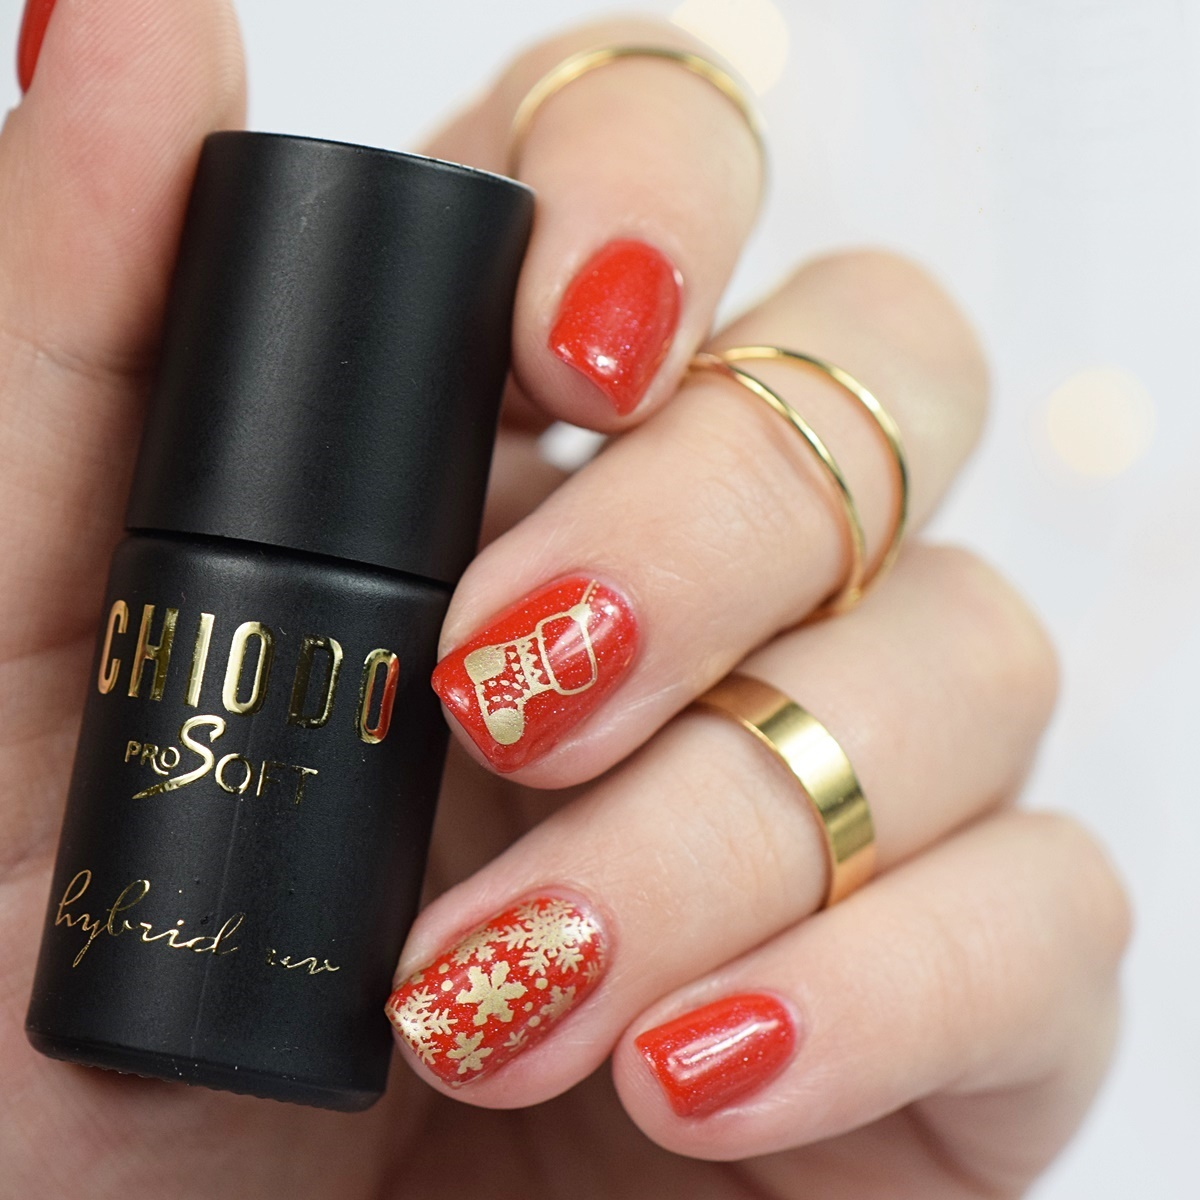 Chiodo Pro Soft 164 Shiny Red Gel Nagellack